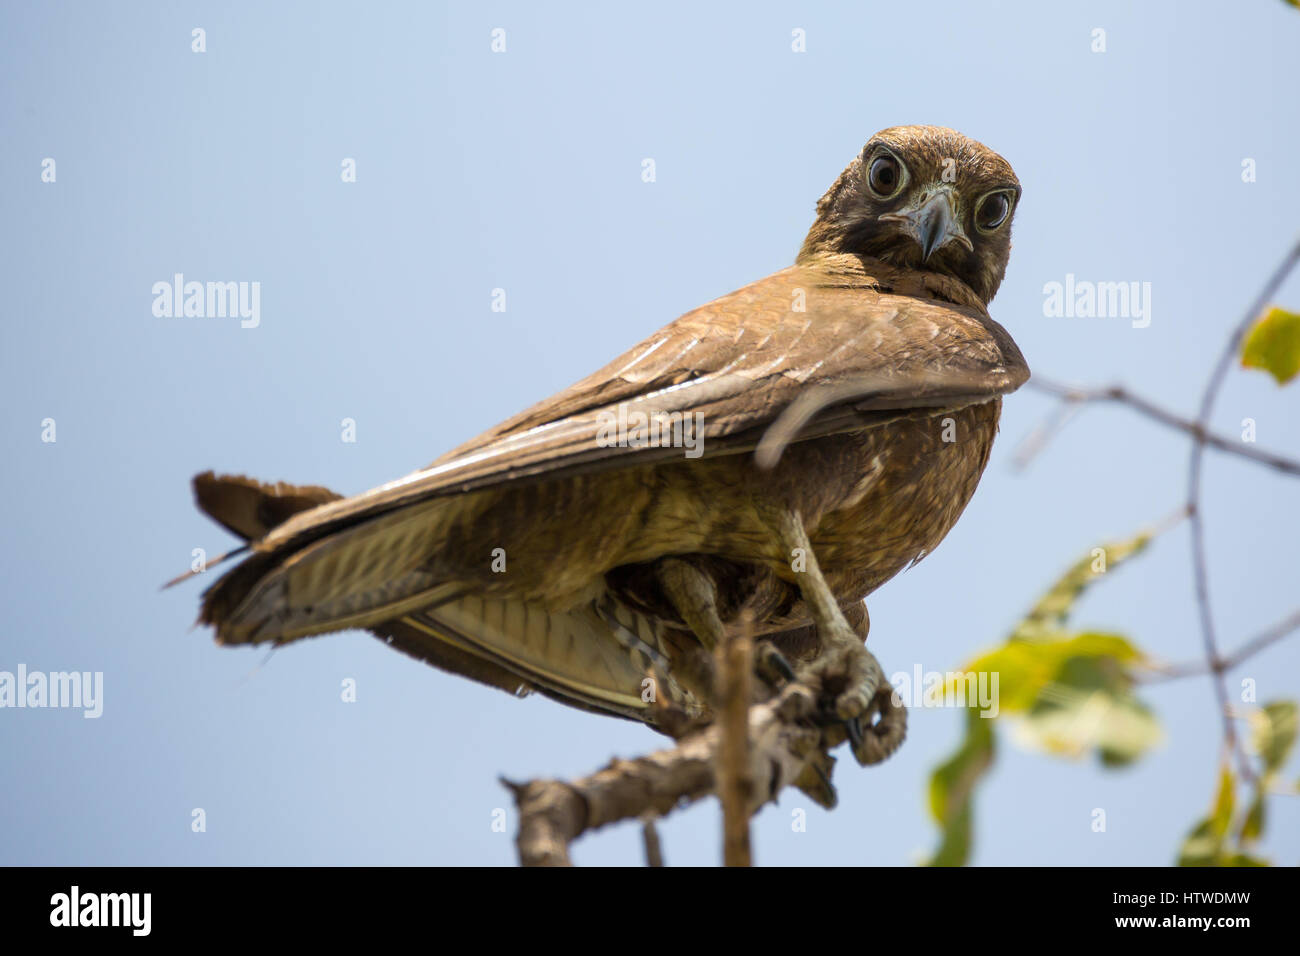 Scary Soar Stock Photos & Scary Soar Stock Images - Alamy